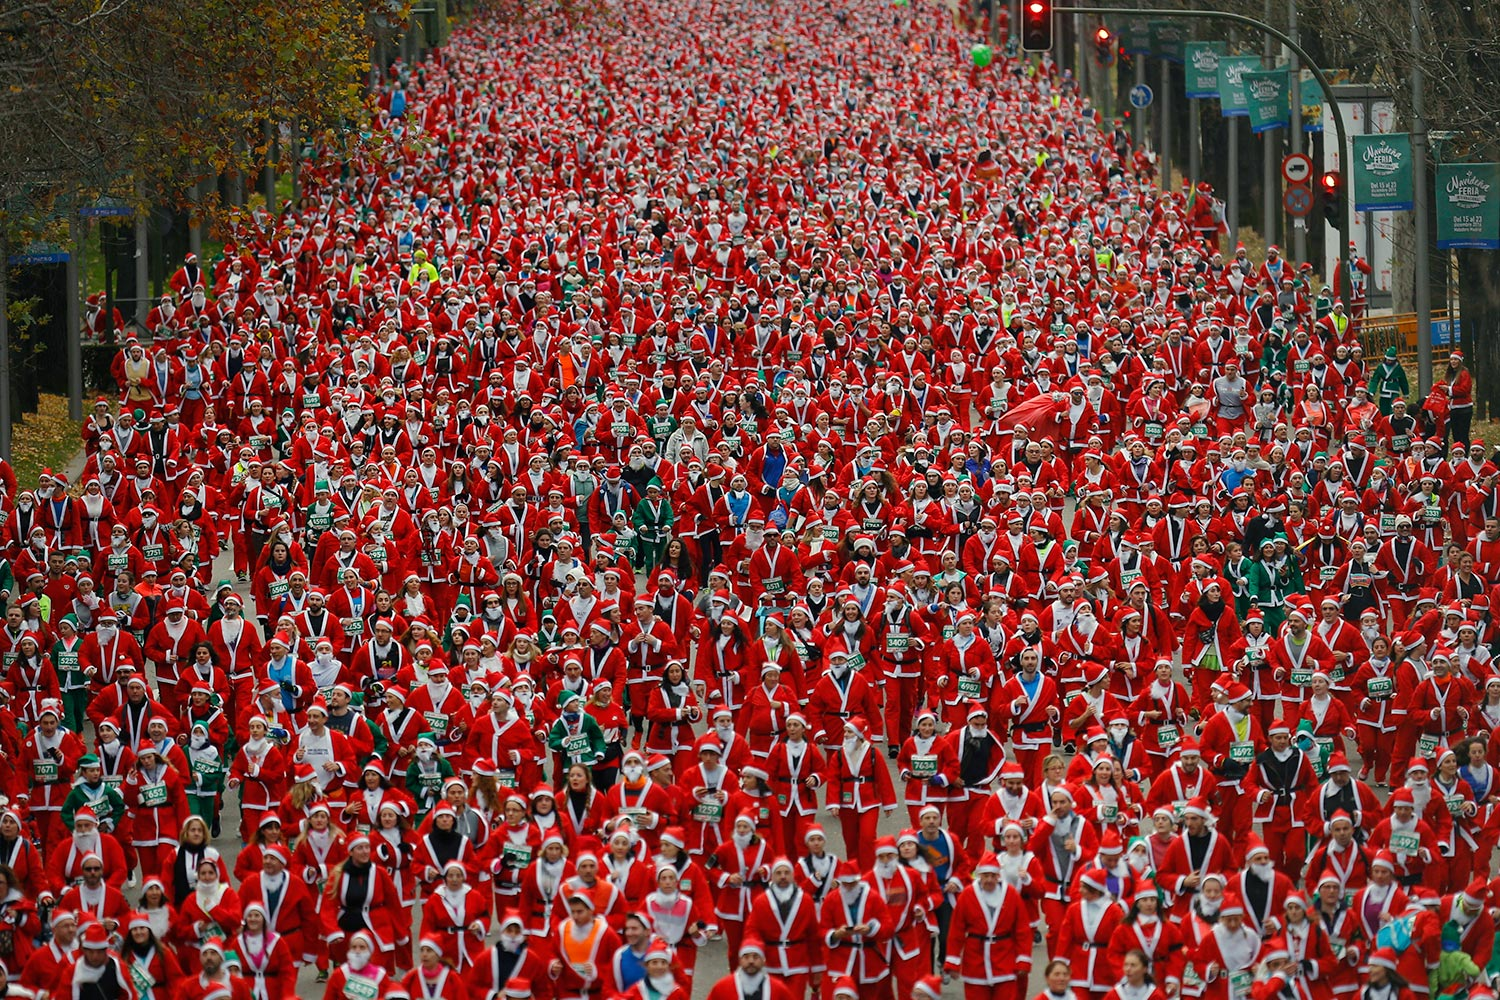 Hundreds of people dressed as Santa Claus take part in the Santa Claus run on Dec. 17, 2016 in Madrid, Spain. More than 20,000 participants dressed as Santa Claus participate in the 8k race through the streets of Madrid.